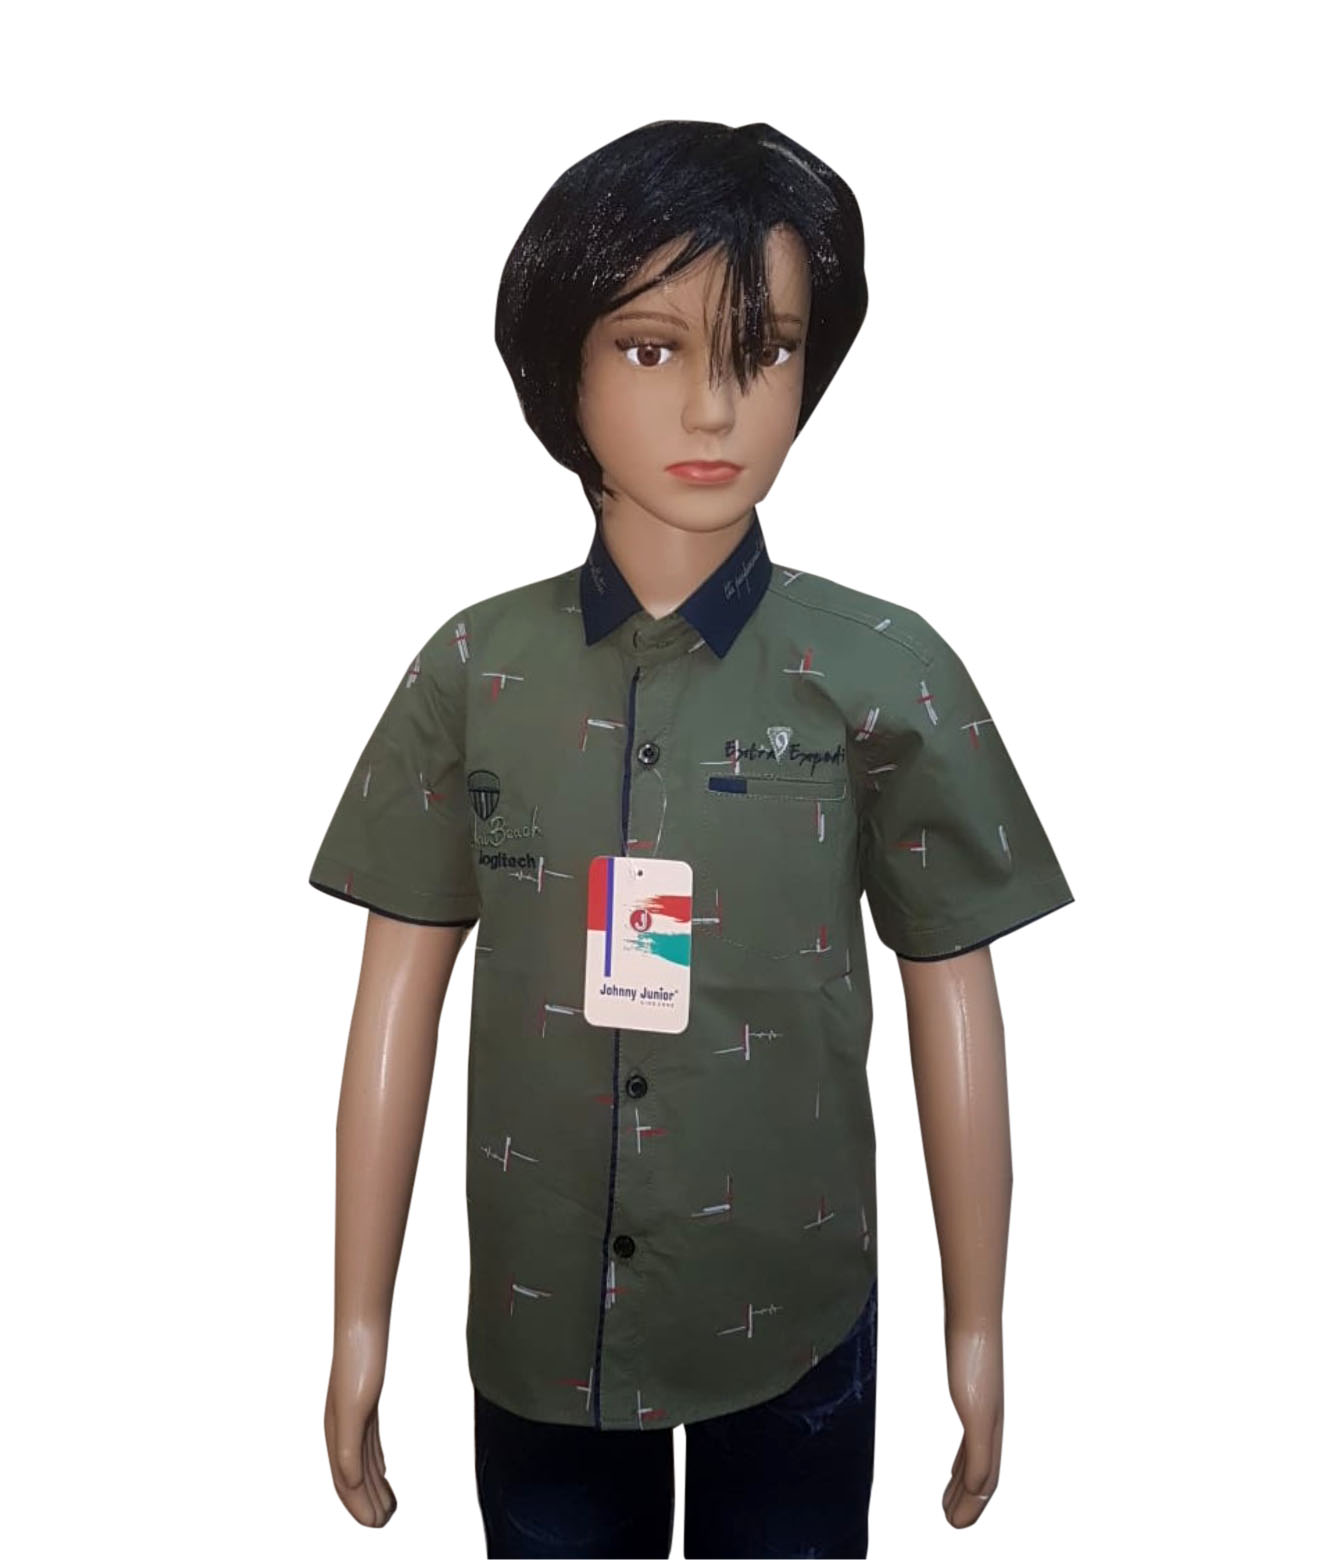 KHS AUG 2019 14-MAHENDI KIDS HALF SLEEVES SHIRT